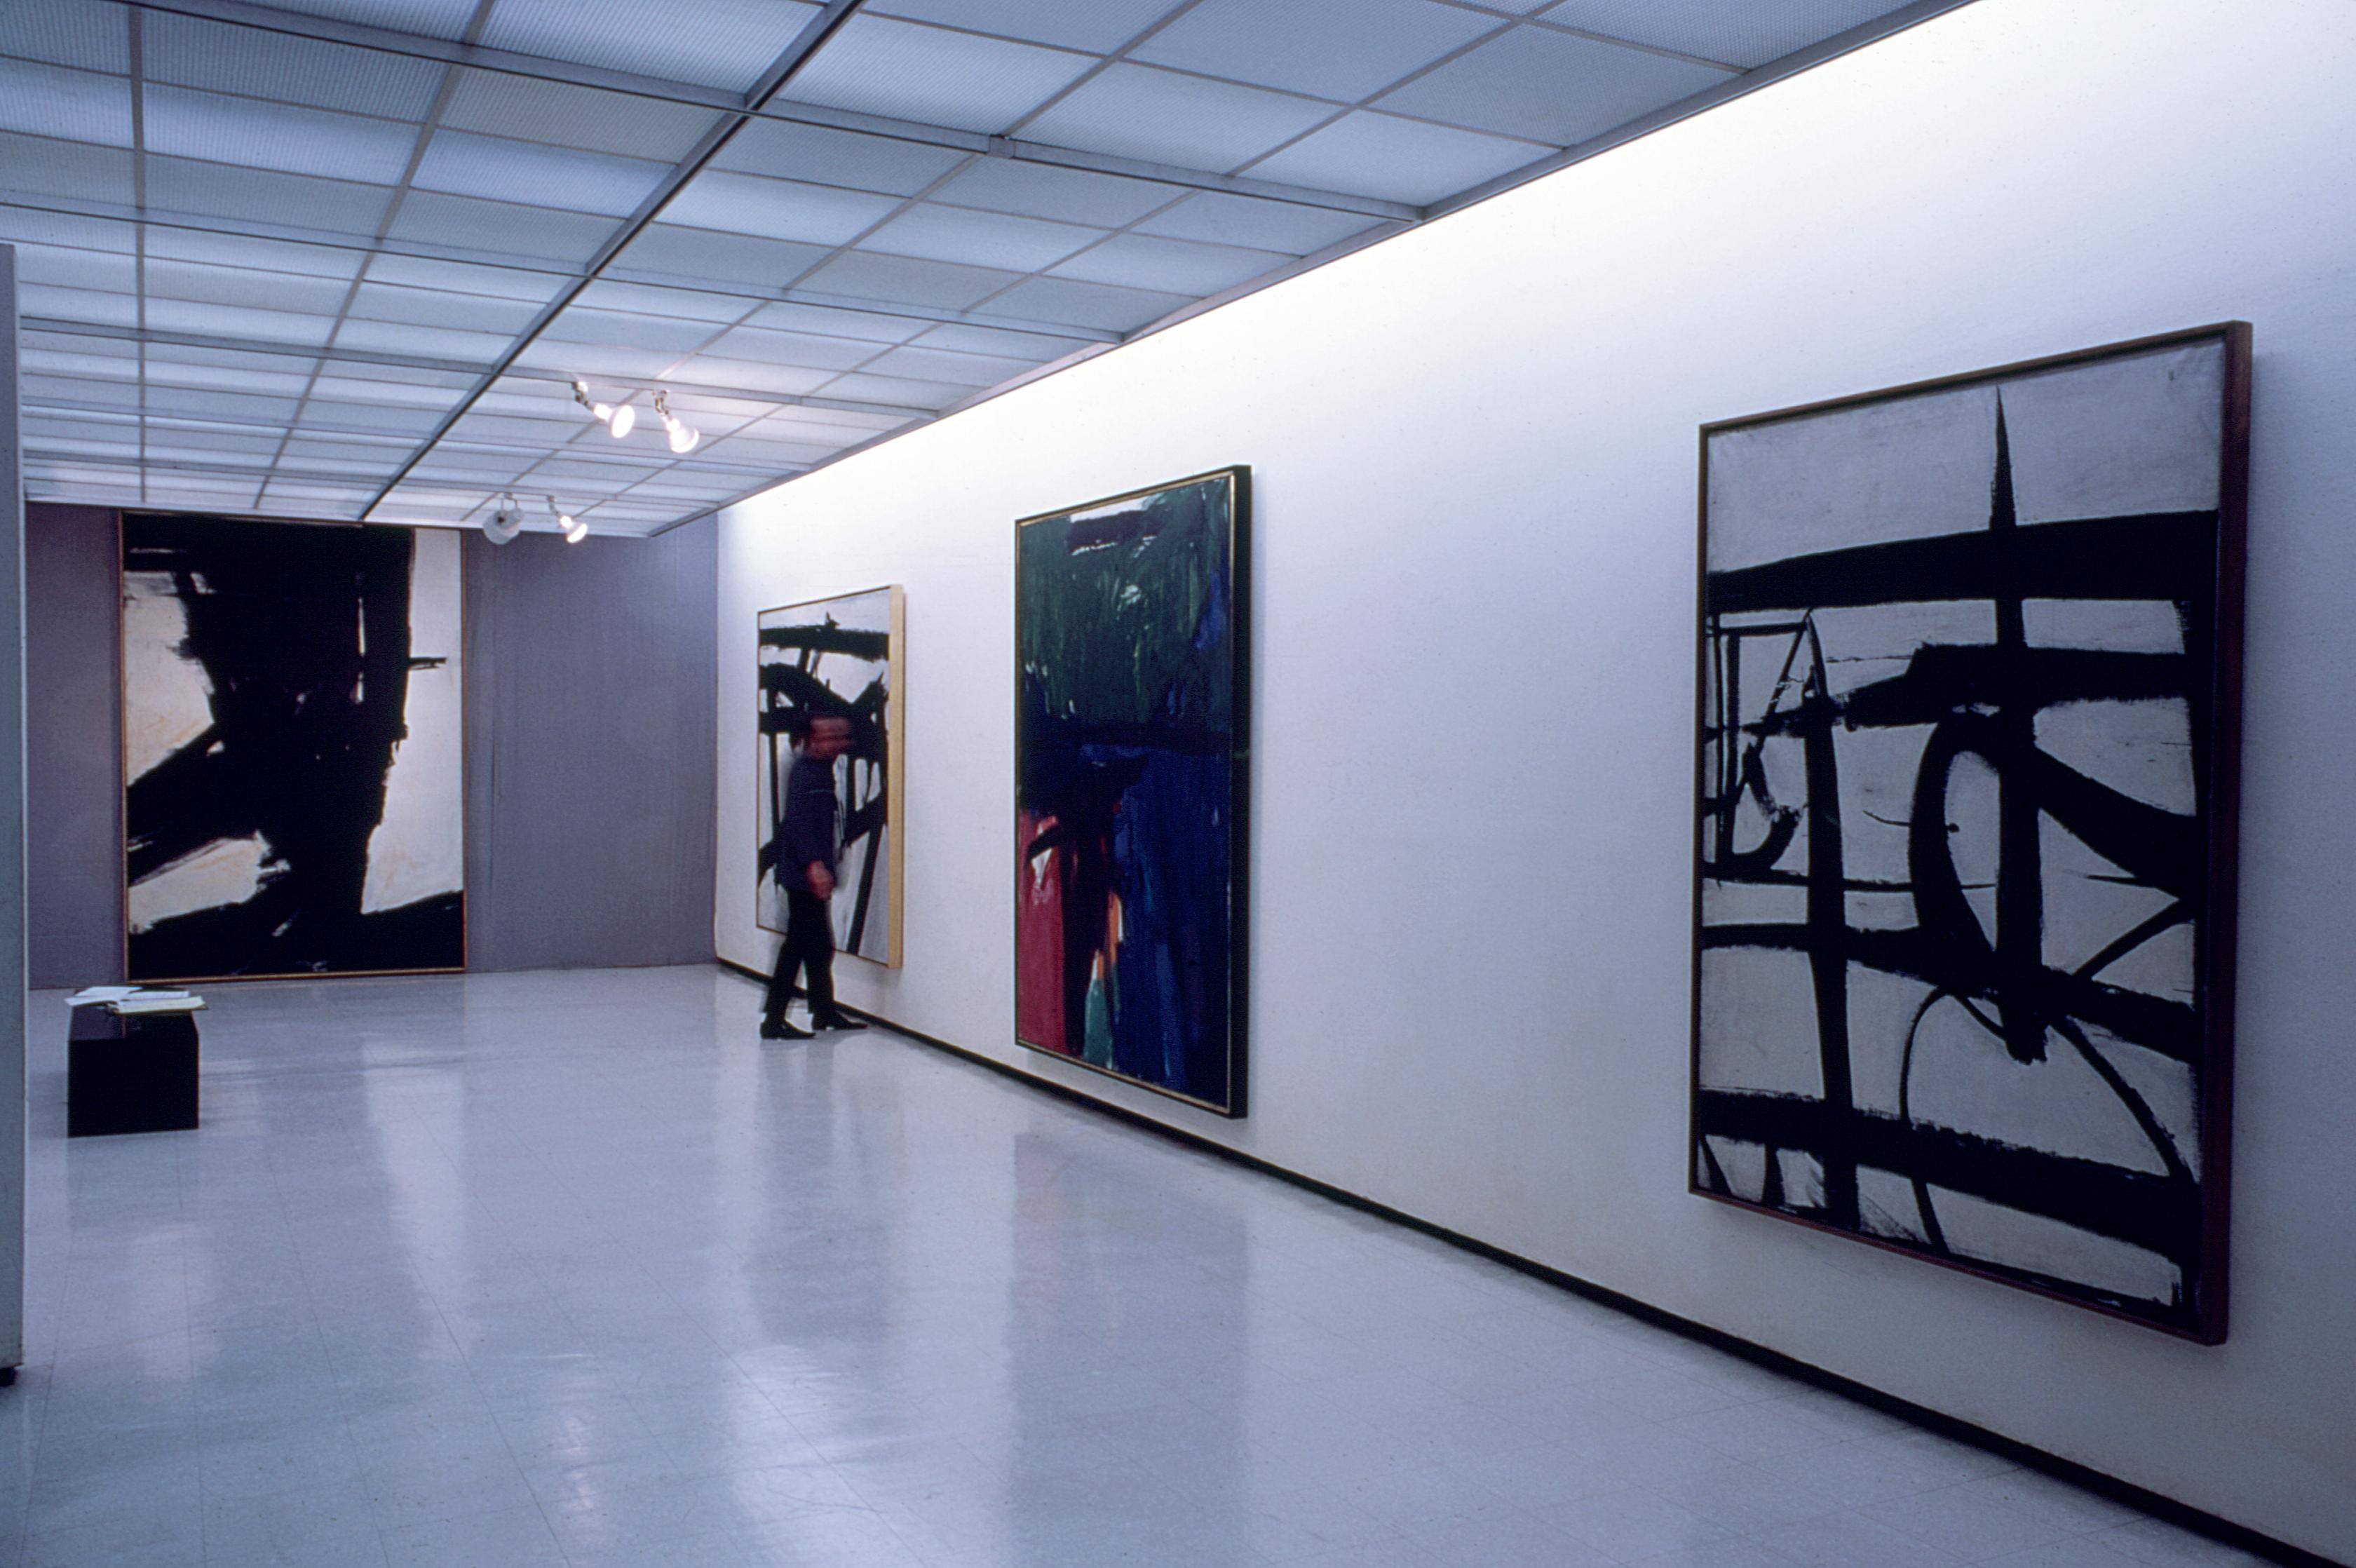 A visitor admires four large paintings hanging along a gallery wall.